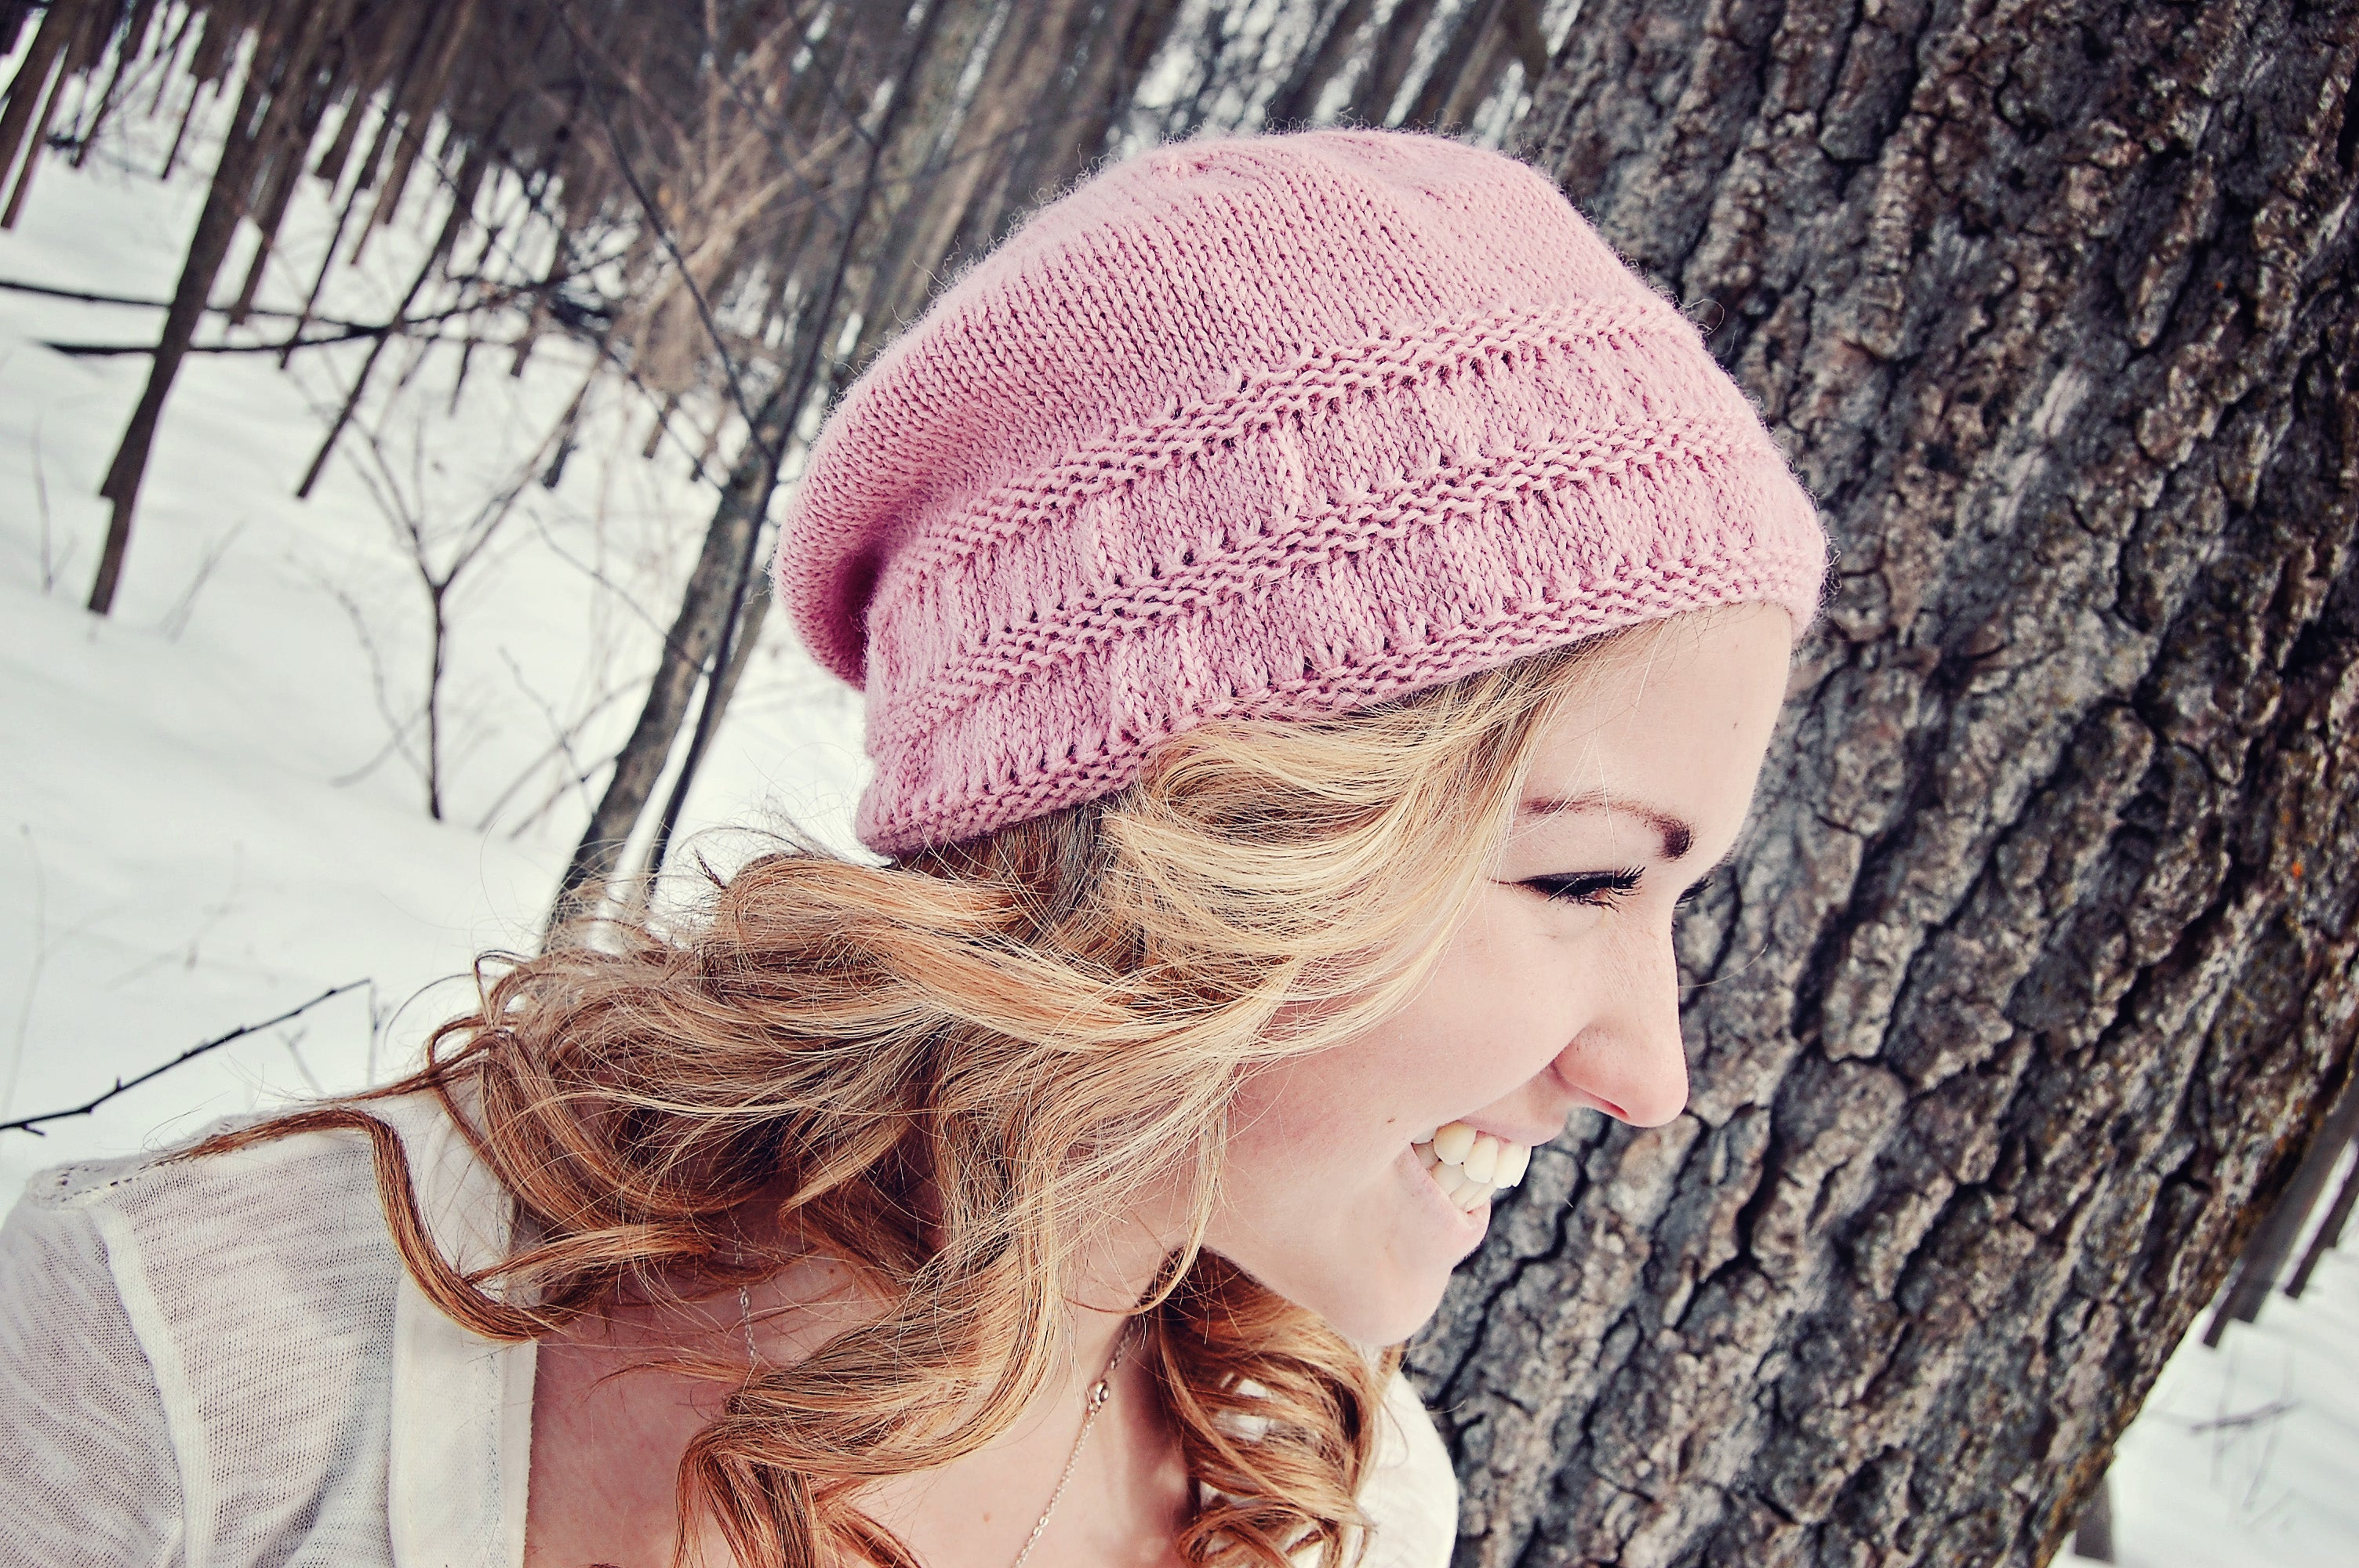 cc2eb50d96fb62 This is just one of the beautiful patterns found in Green Gables Knits.  Fellow knit wear designer and friend, Joanna Johnson is the author behind  the ...